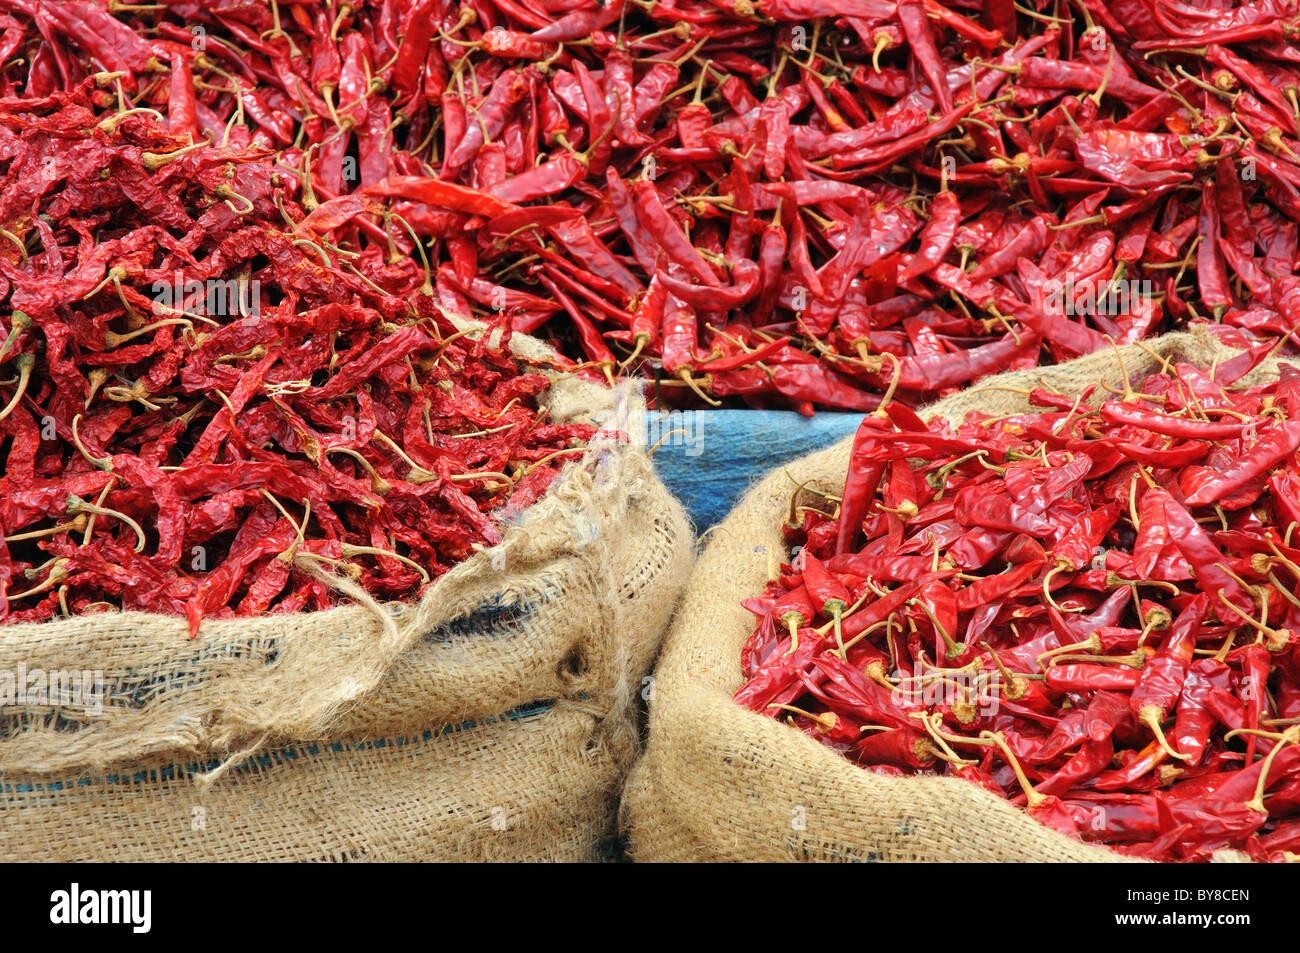 Sacks of red chillies Stock Photo